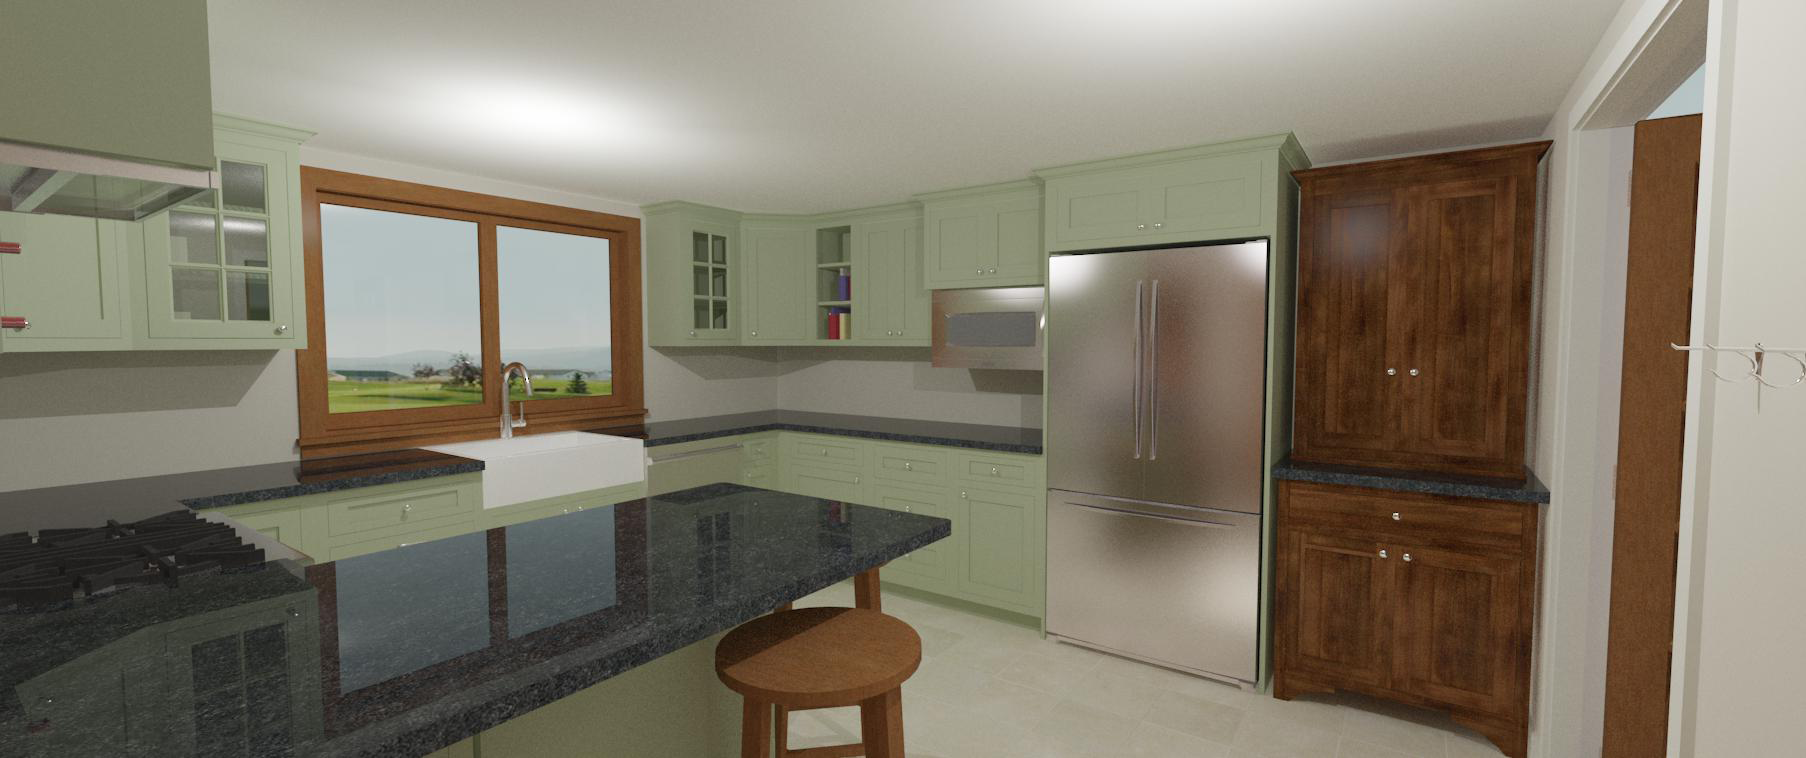 The 3D model is rendered in the Chief Architect software.